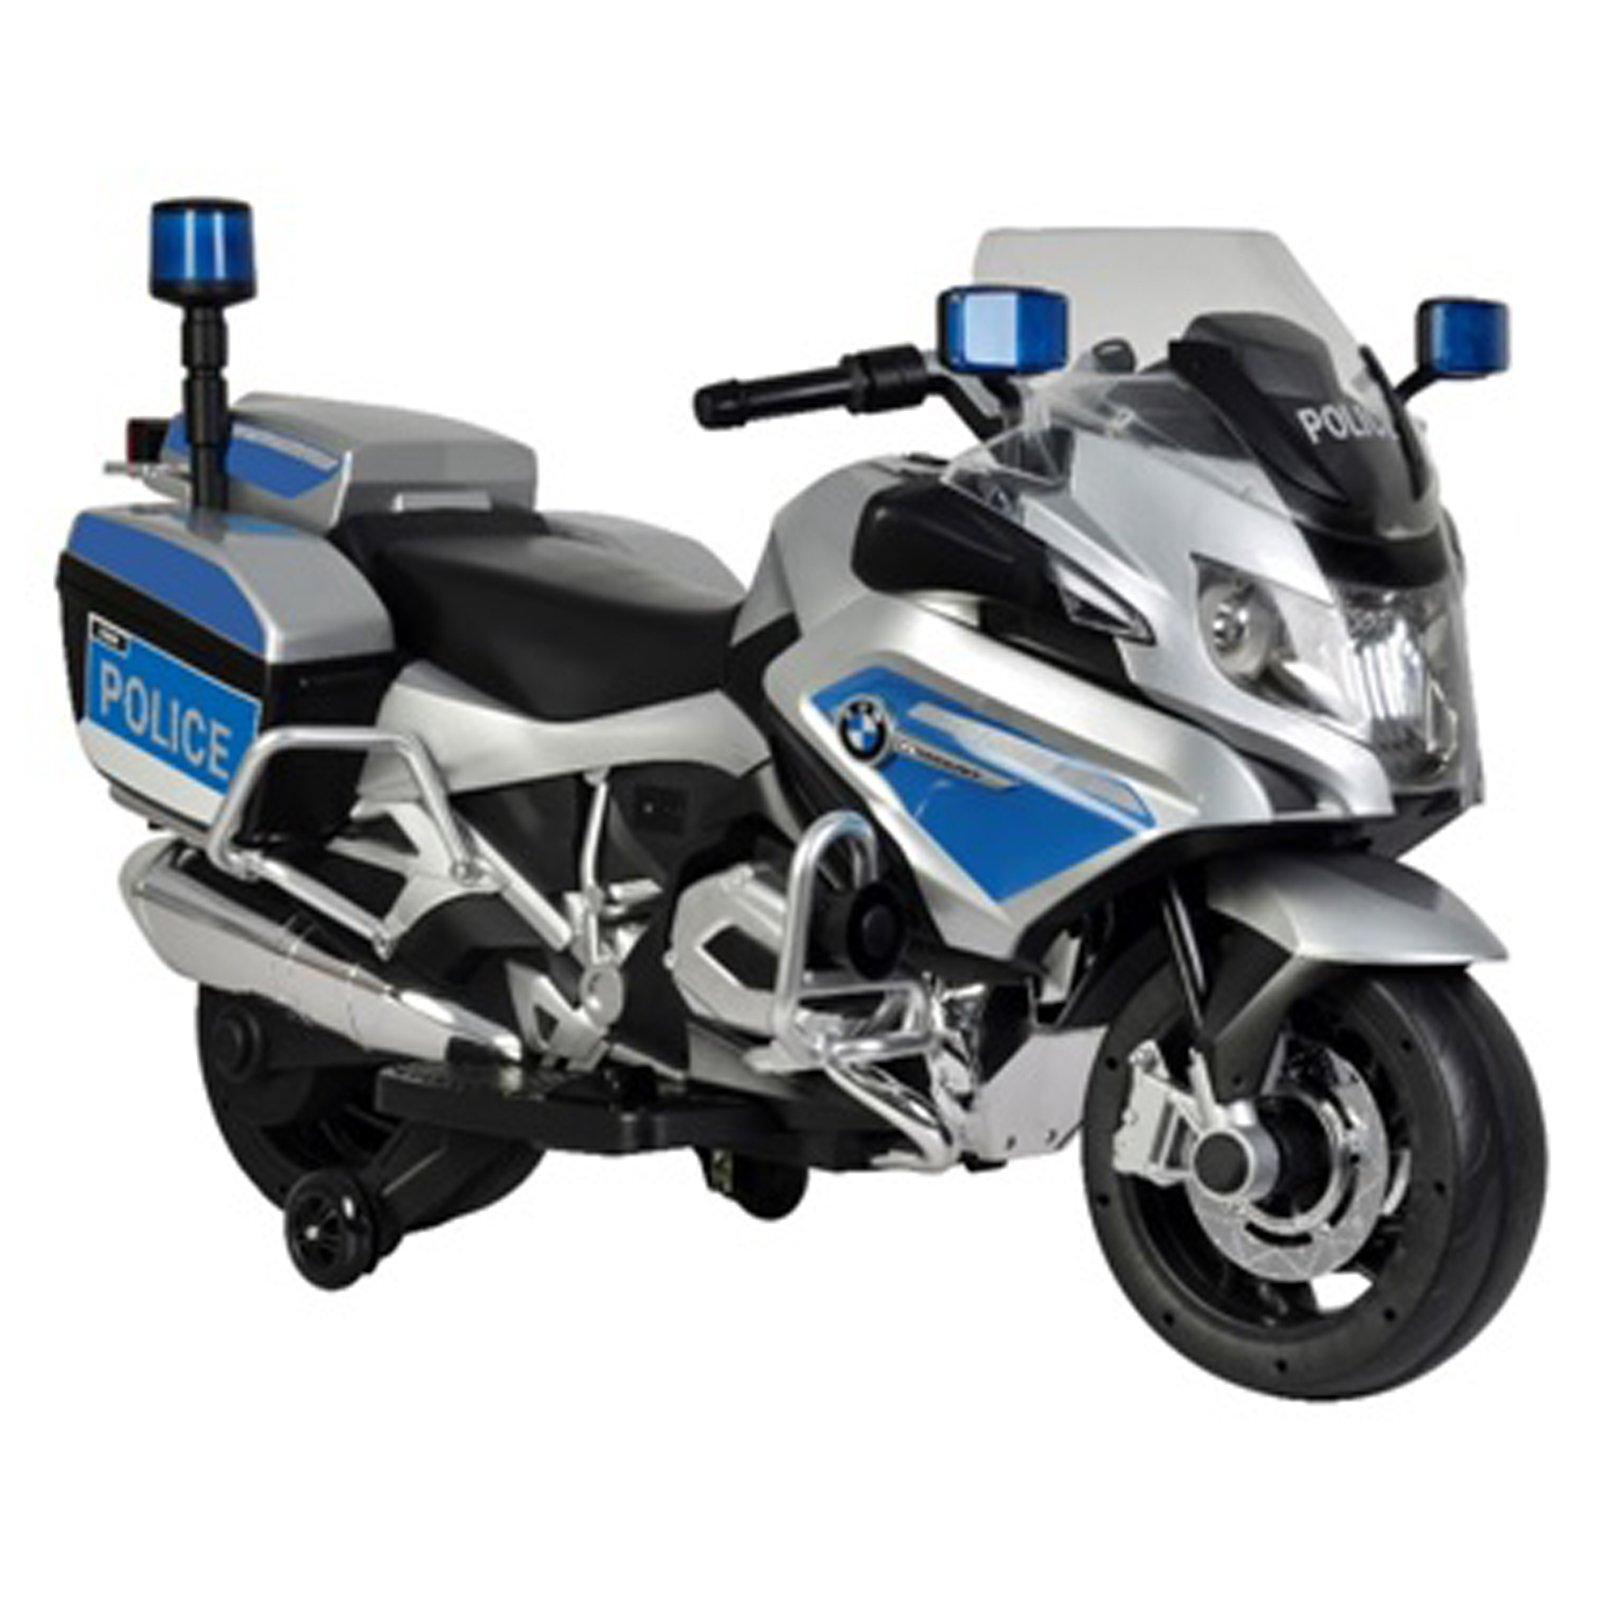 KidPlay Products Kids BMW Police Bike Ride On Motorcycle 12V Battery - Silver